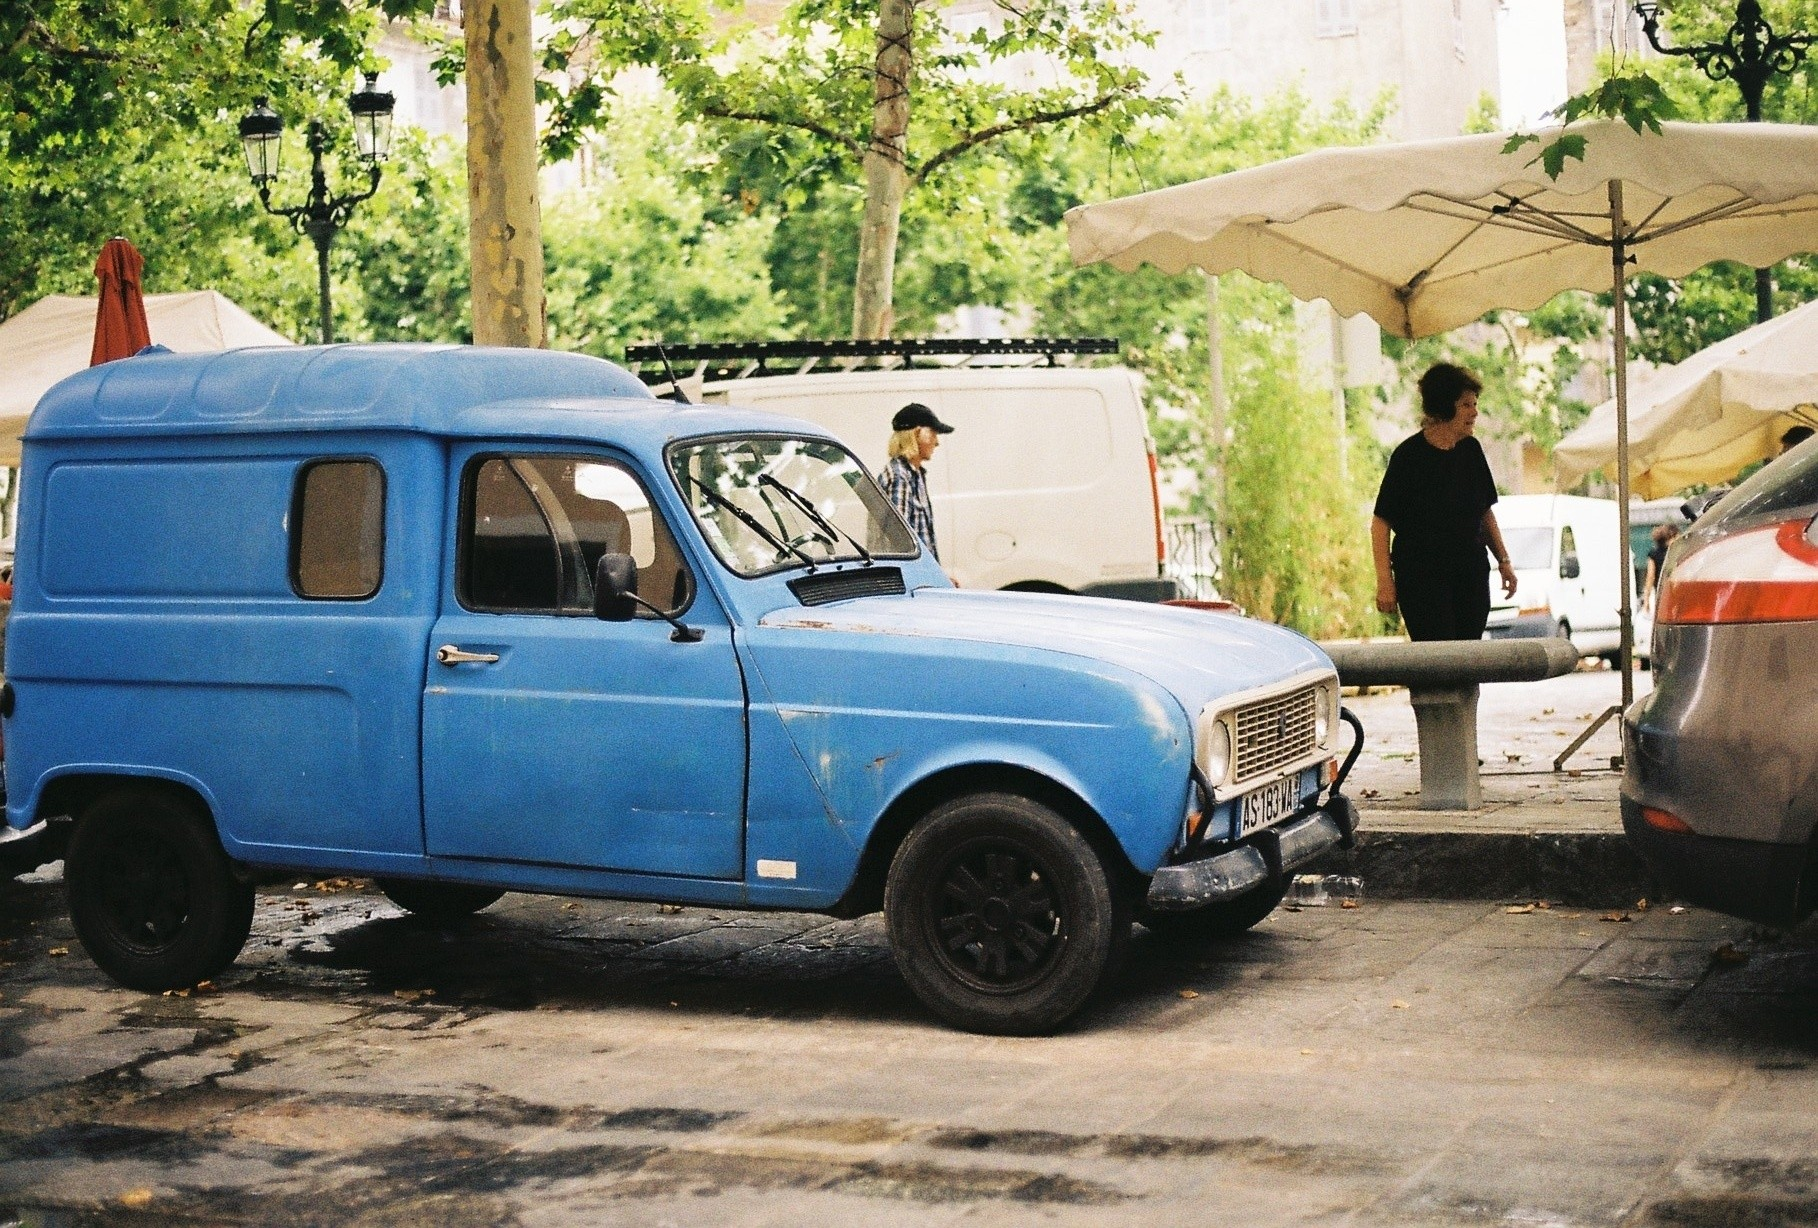 And photos of old French cars